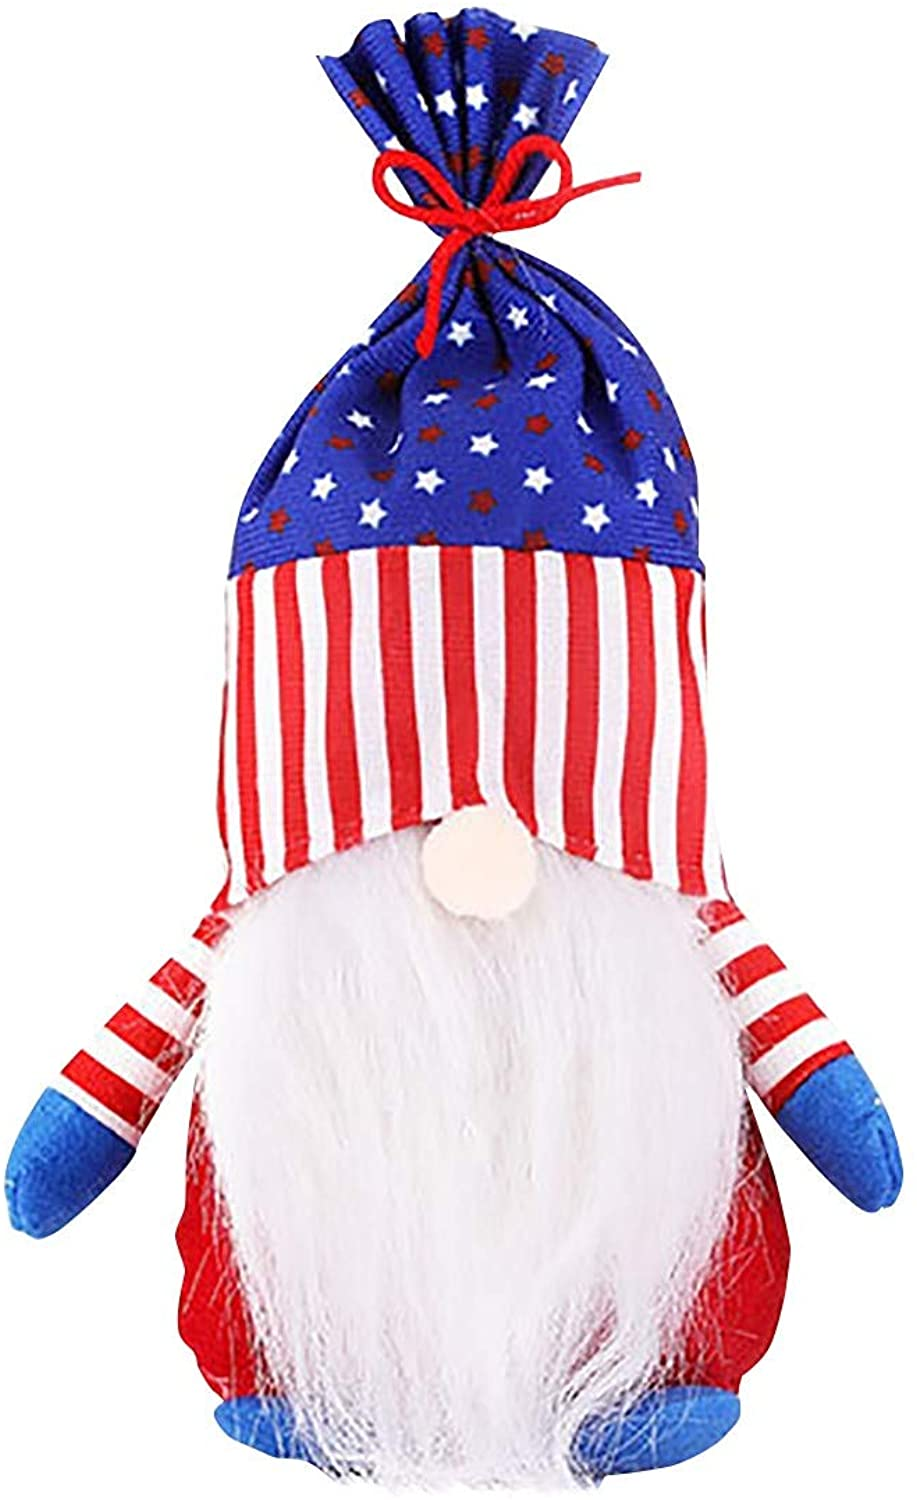 XWXW 3 Pieces of Seattle Mall Arlington Mall Patriotic Gnome Faceless Decor Day Independence